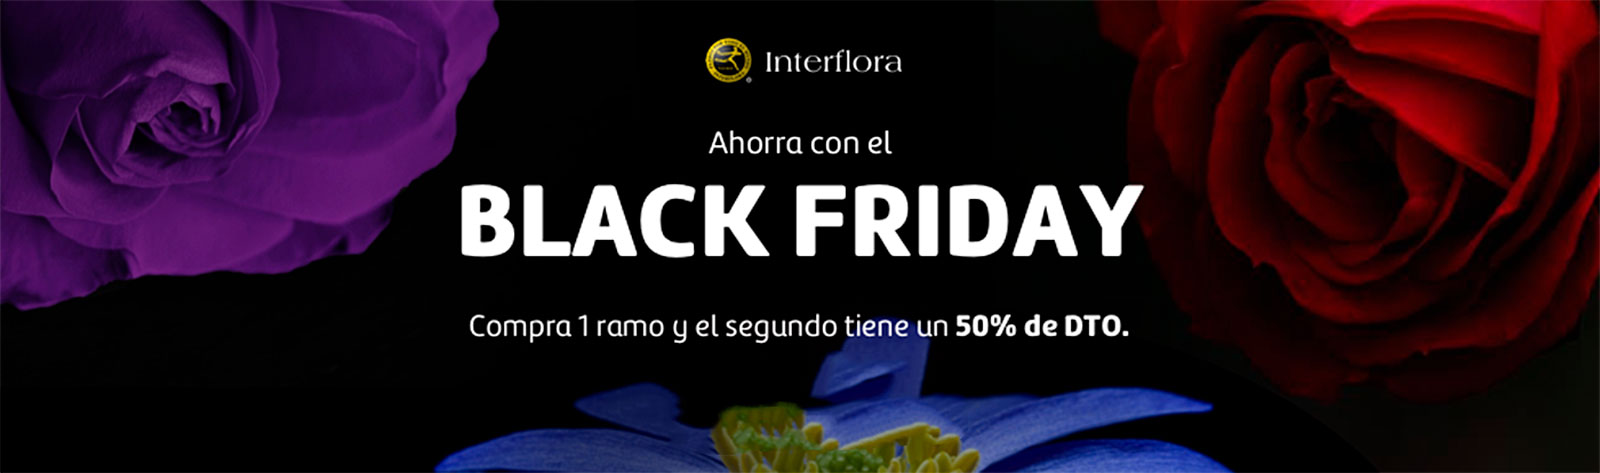 Flores para el black friday